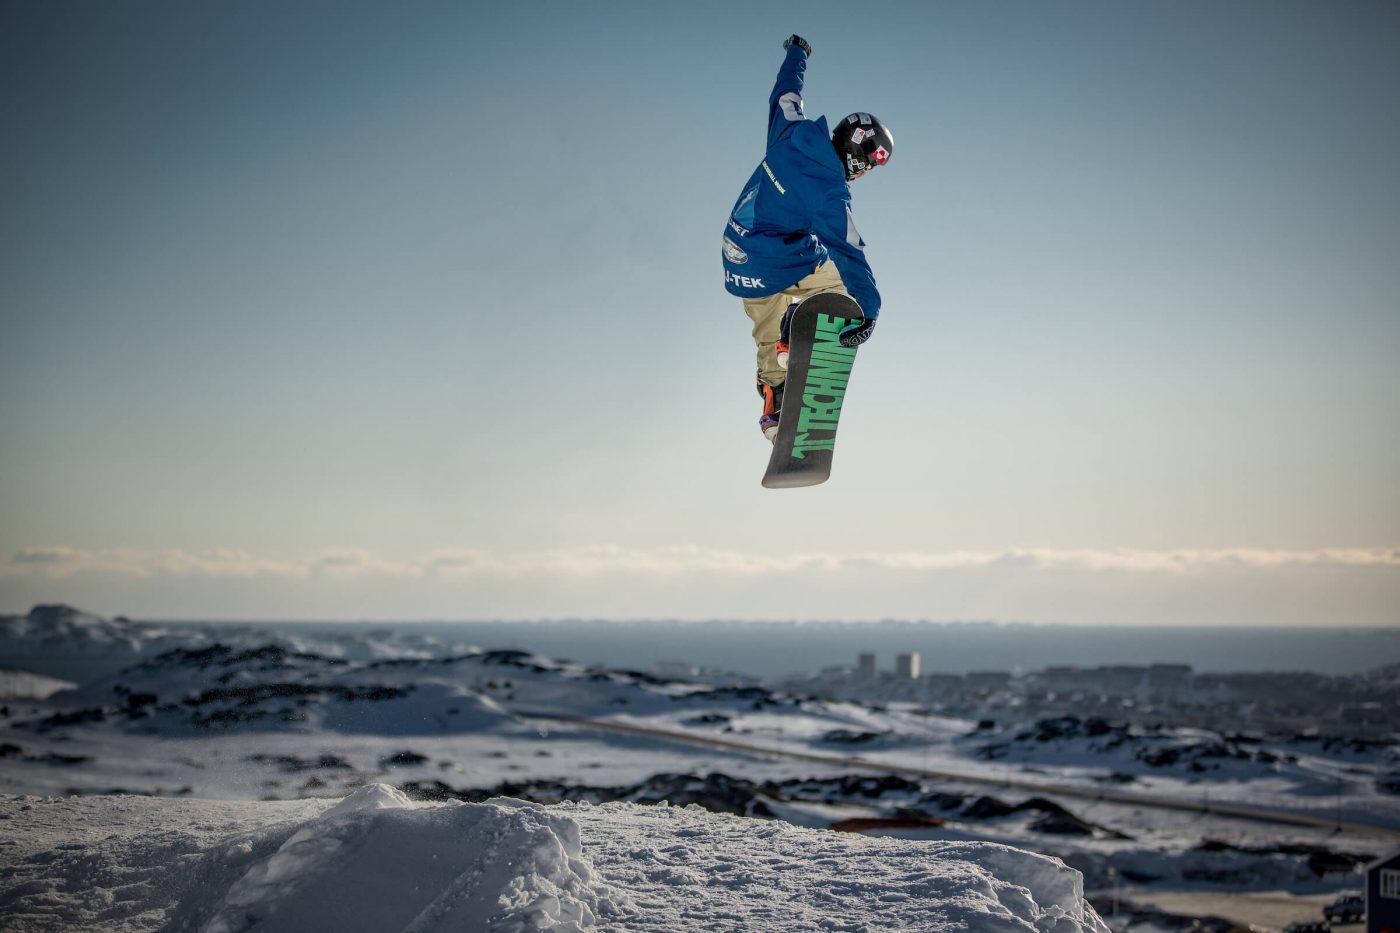 A snowboarder doing a tailgrab in Nuuk in Greenland. Photo by Mads Pihl